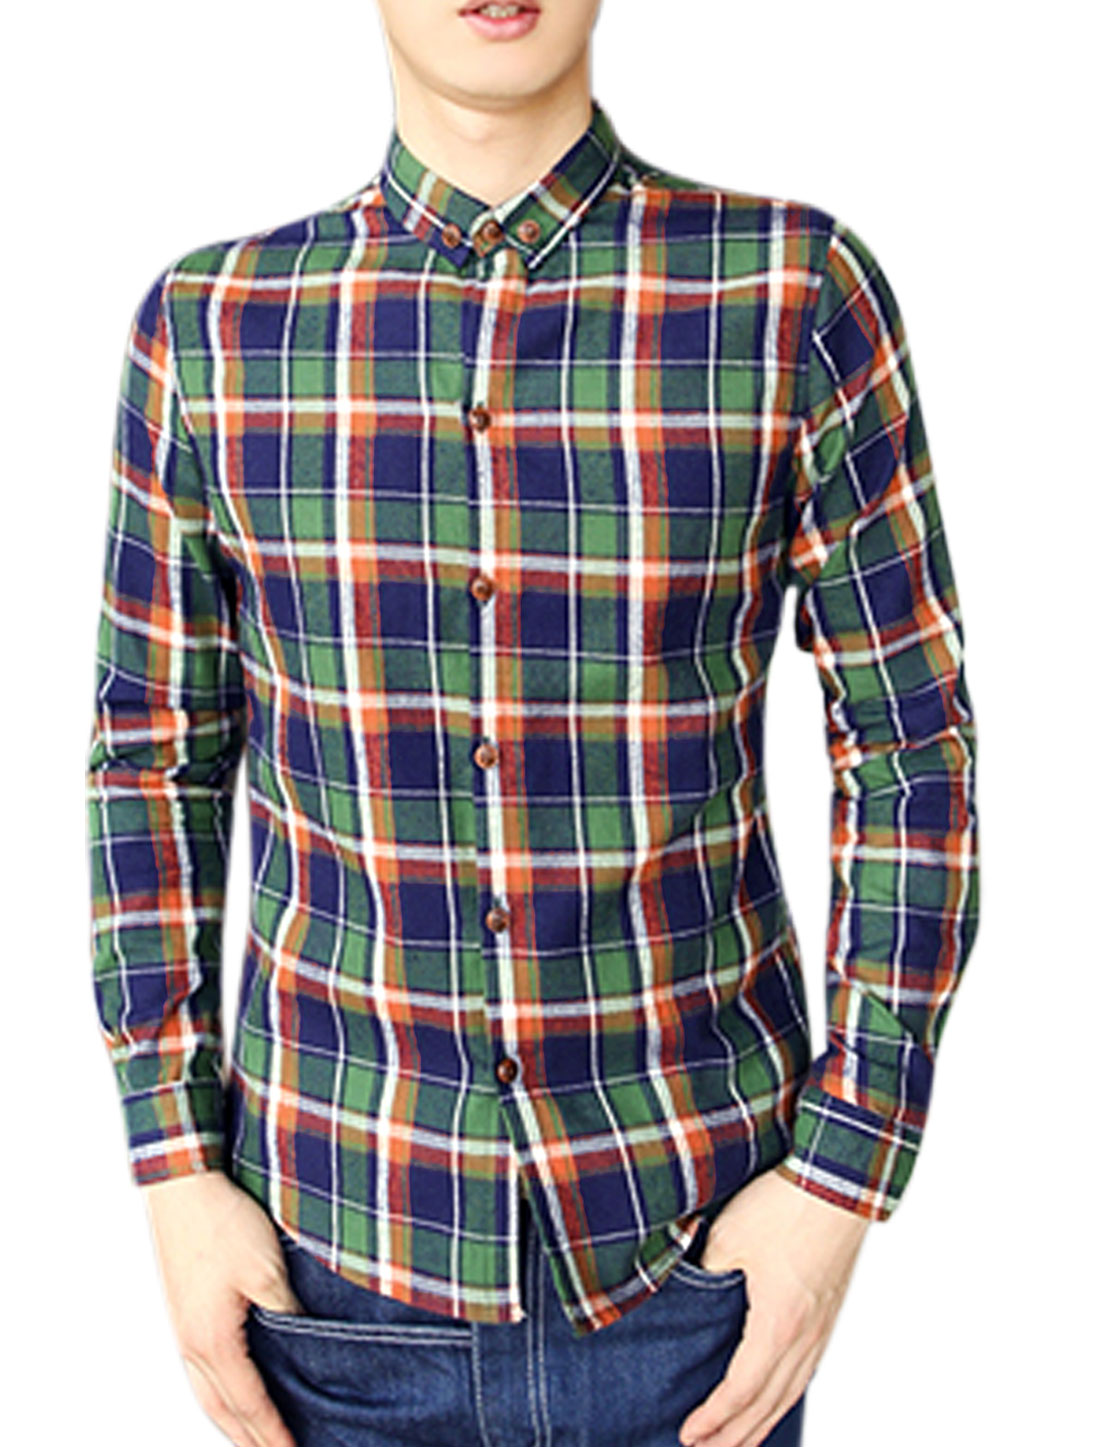 Men Long Sleeve Point Collar Checks Casual Shirts Green Navy Blue M